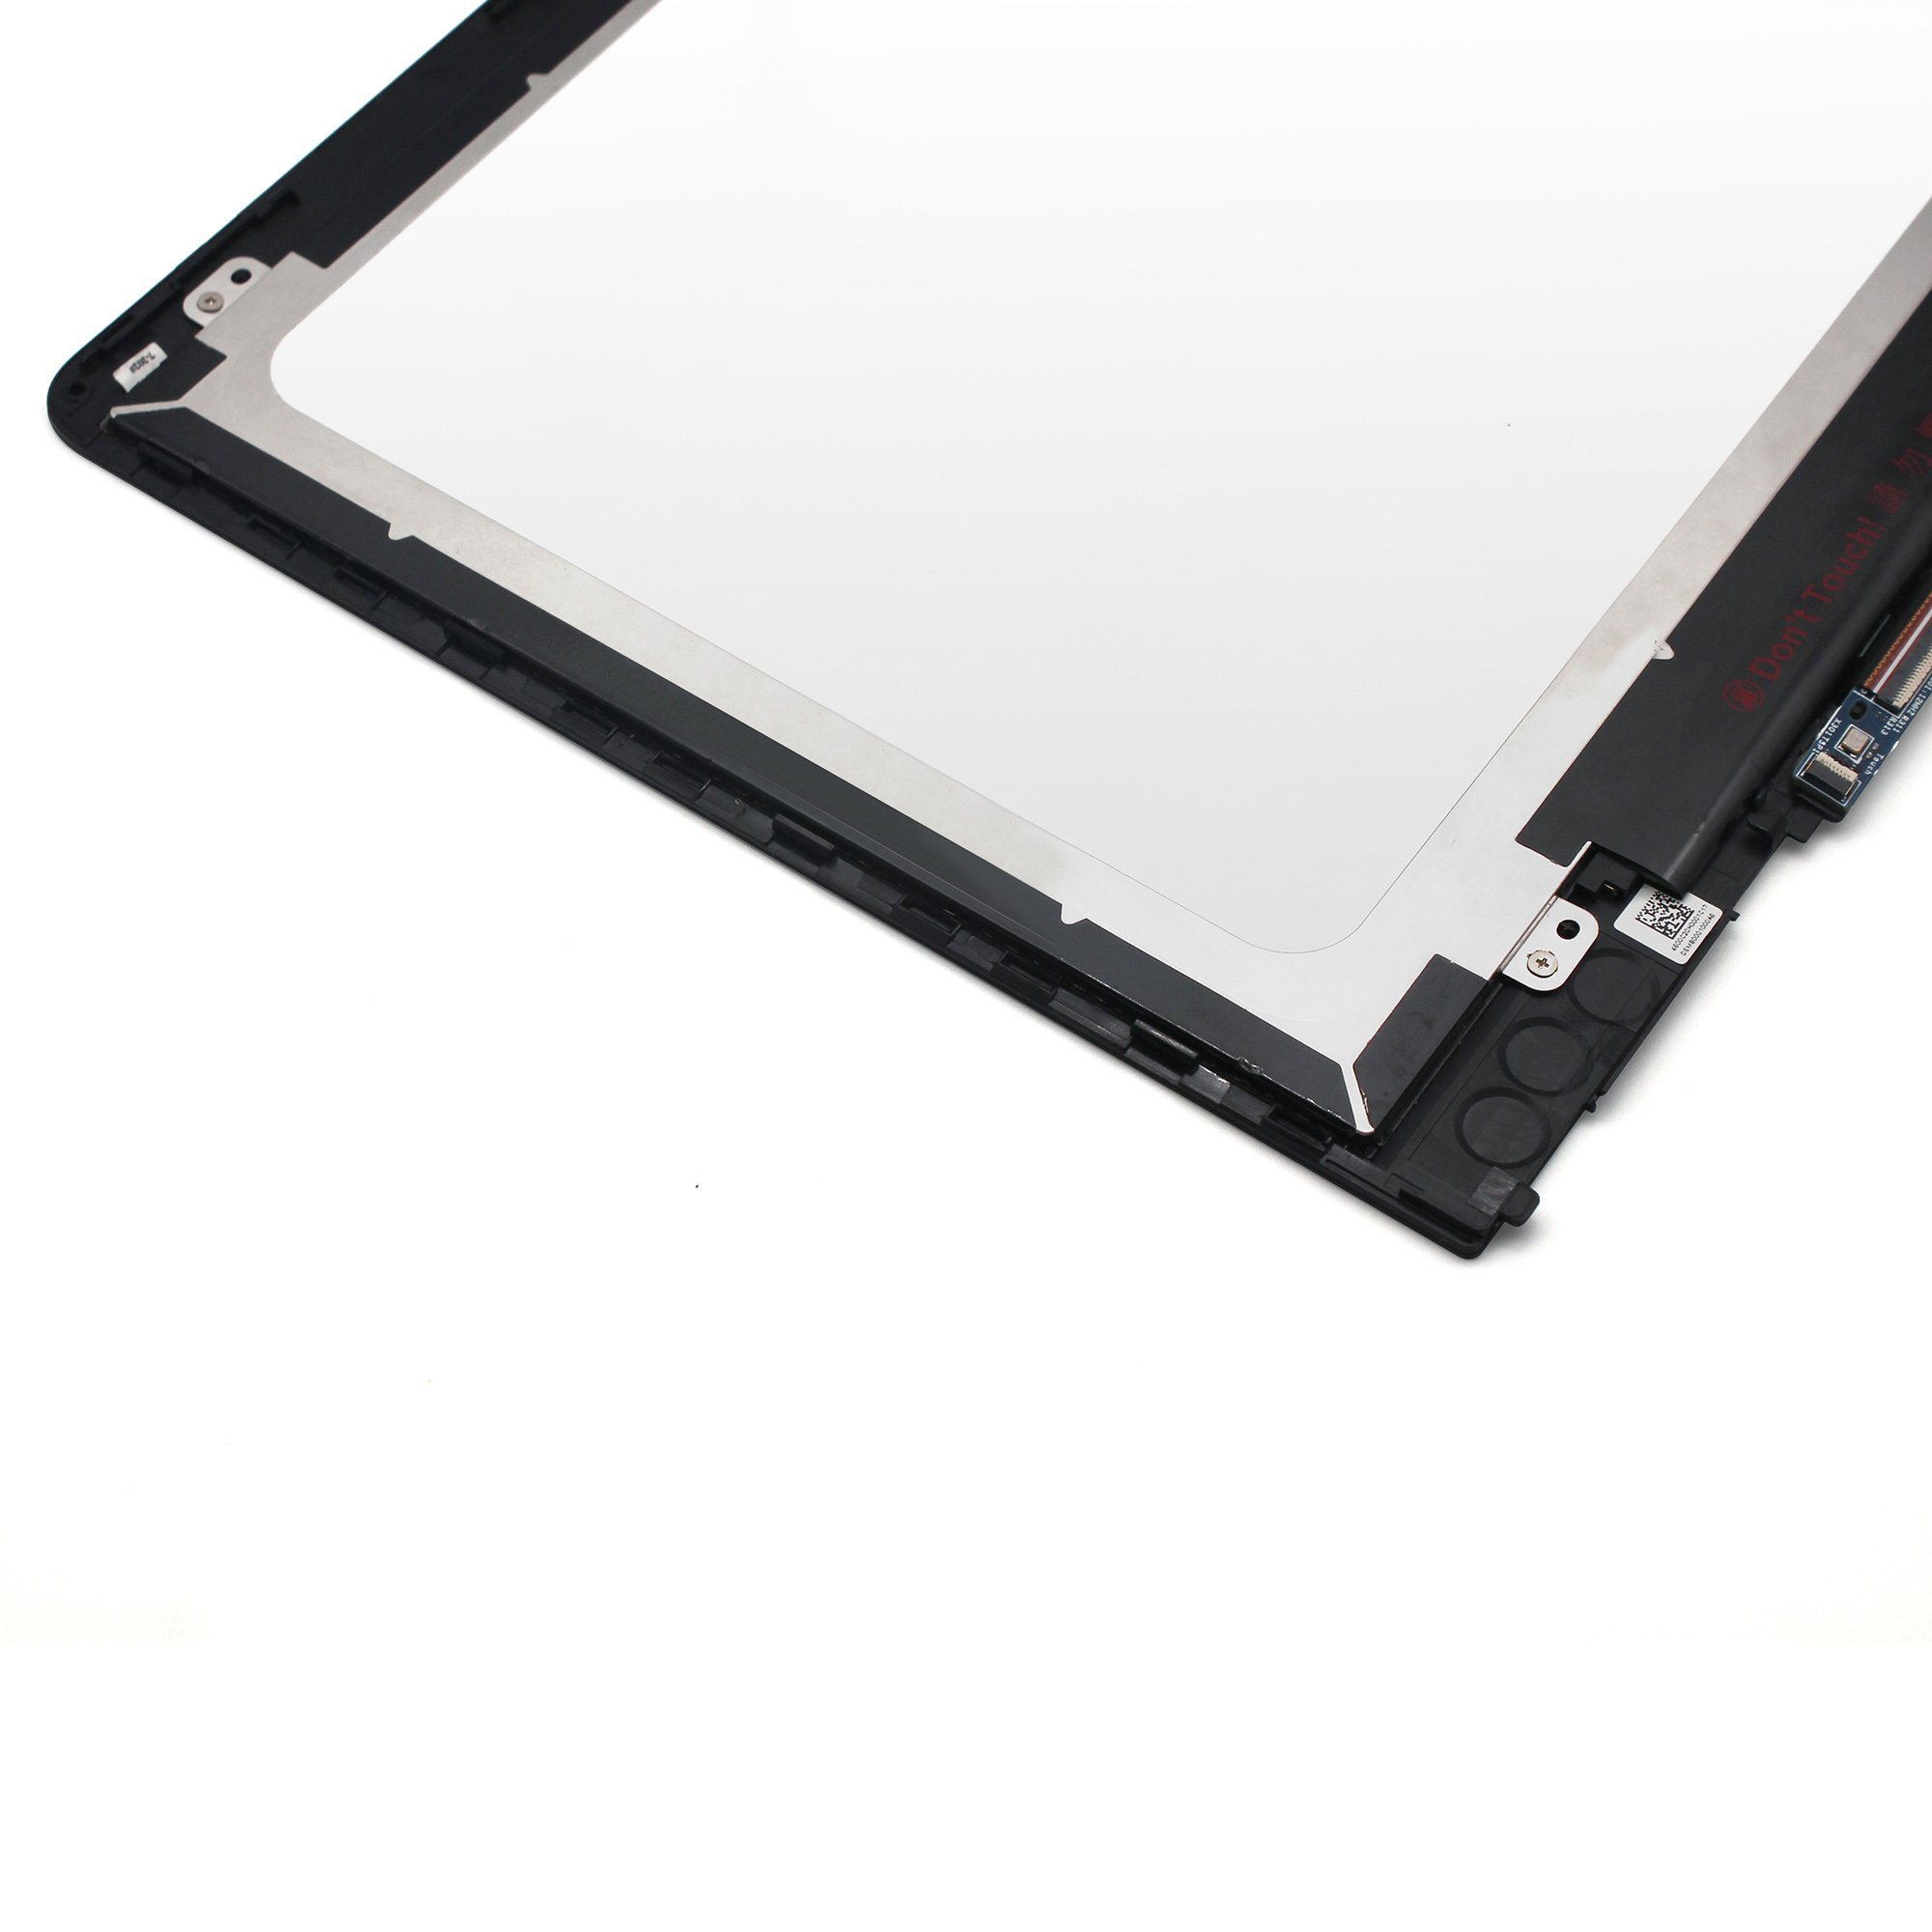 LCDOLED Replacement 14 inches HD 1366x768 LCD Touch Screen Digitizer Assembly Bezel with Board for HP Pavilion x360 14-ba000 14-ba100 14m-ba000 14m-ba100 14m-ba013dx 14m-ba015dx 14-ba110nr 14-ba175nr by LCDOLED (Image #5)